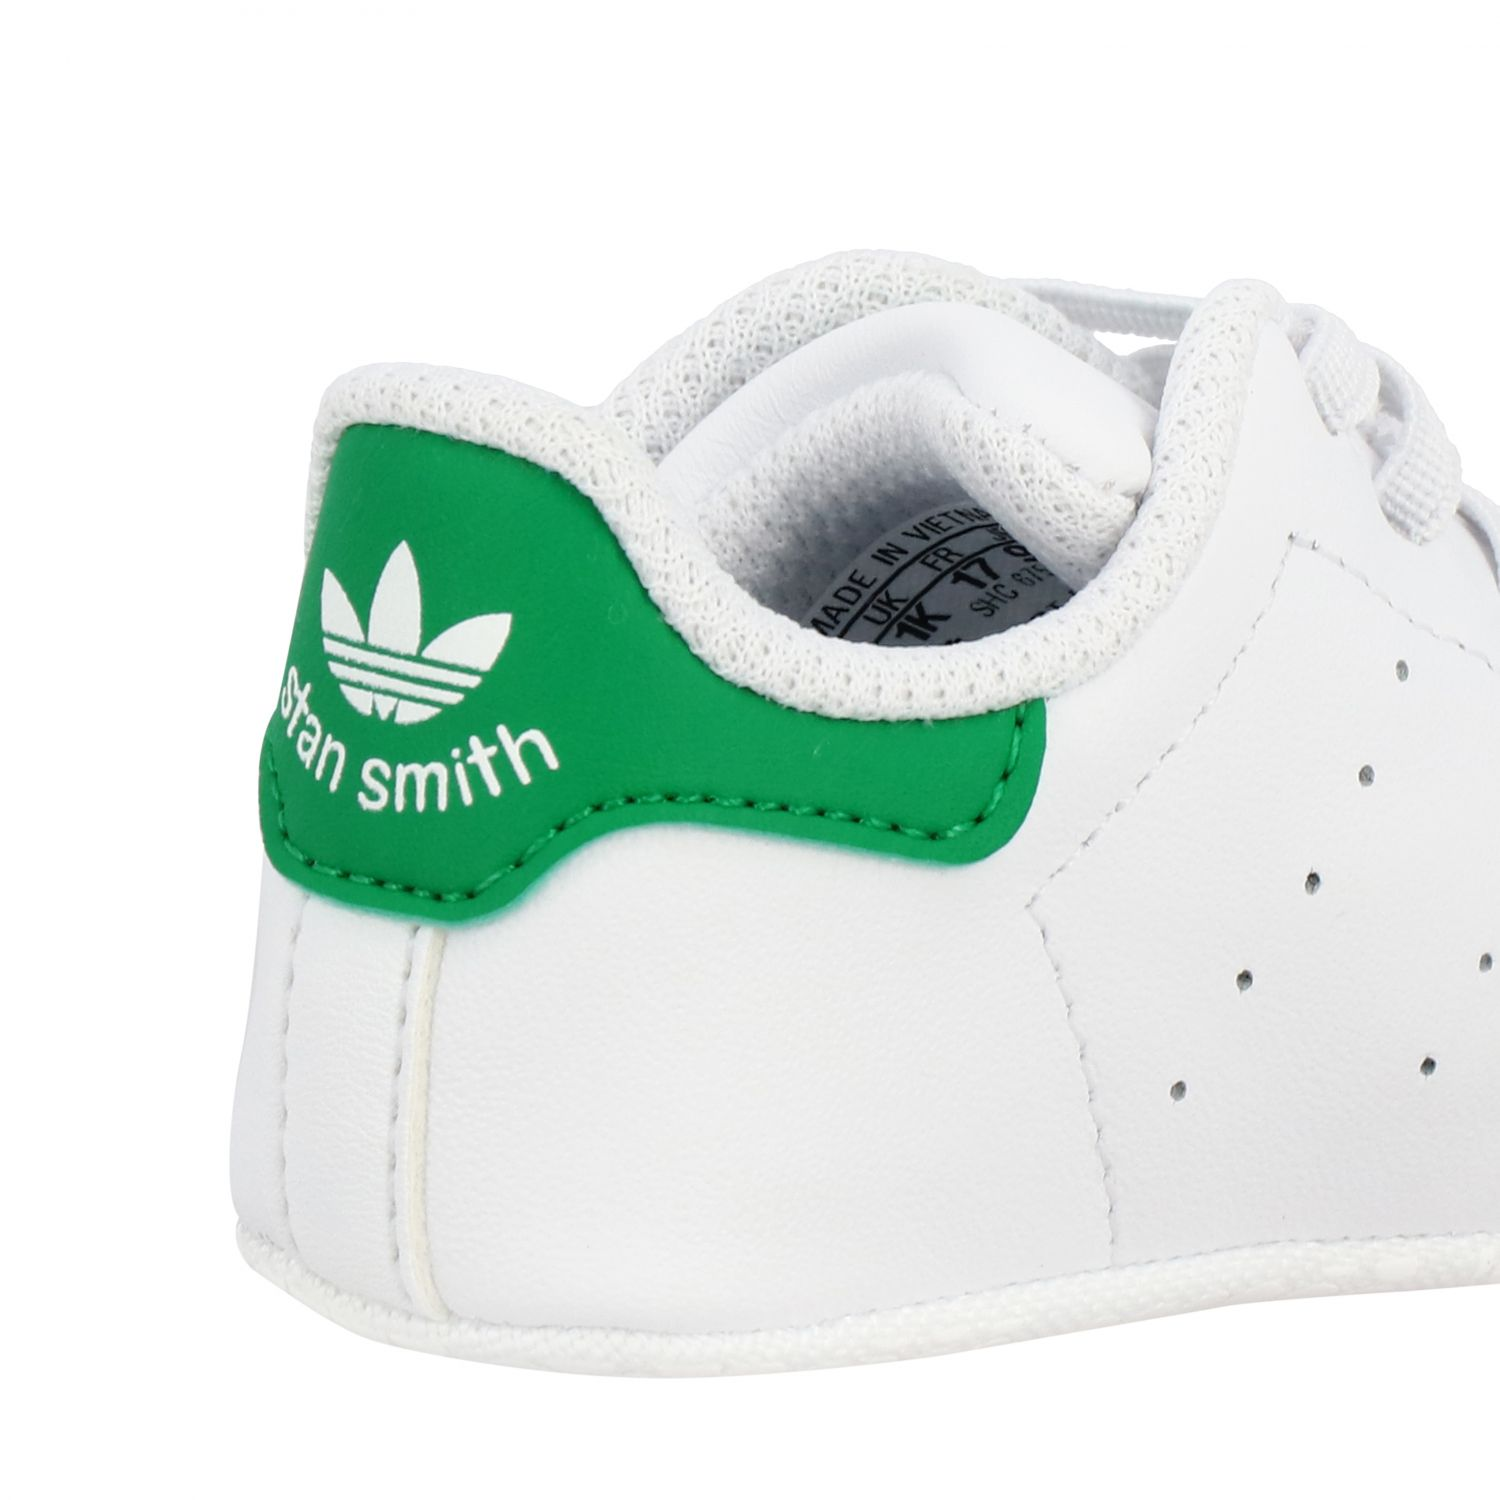 Shoes Adidas Originals: Stan smith Crib Adidas Originals leather sneakers white 5